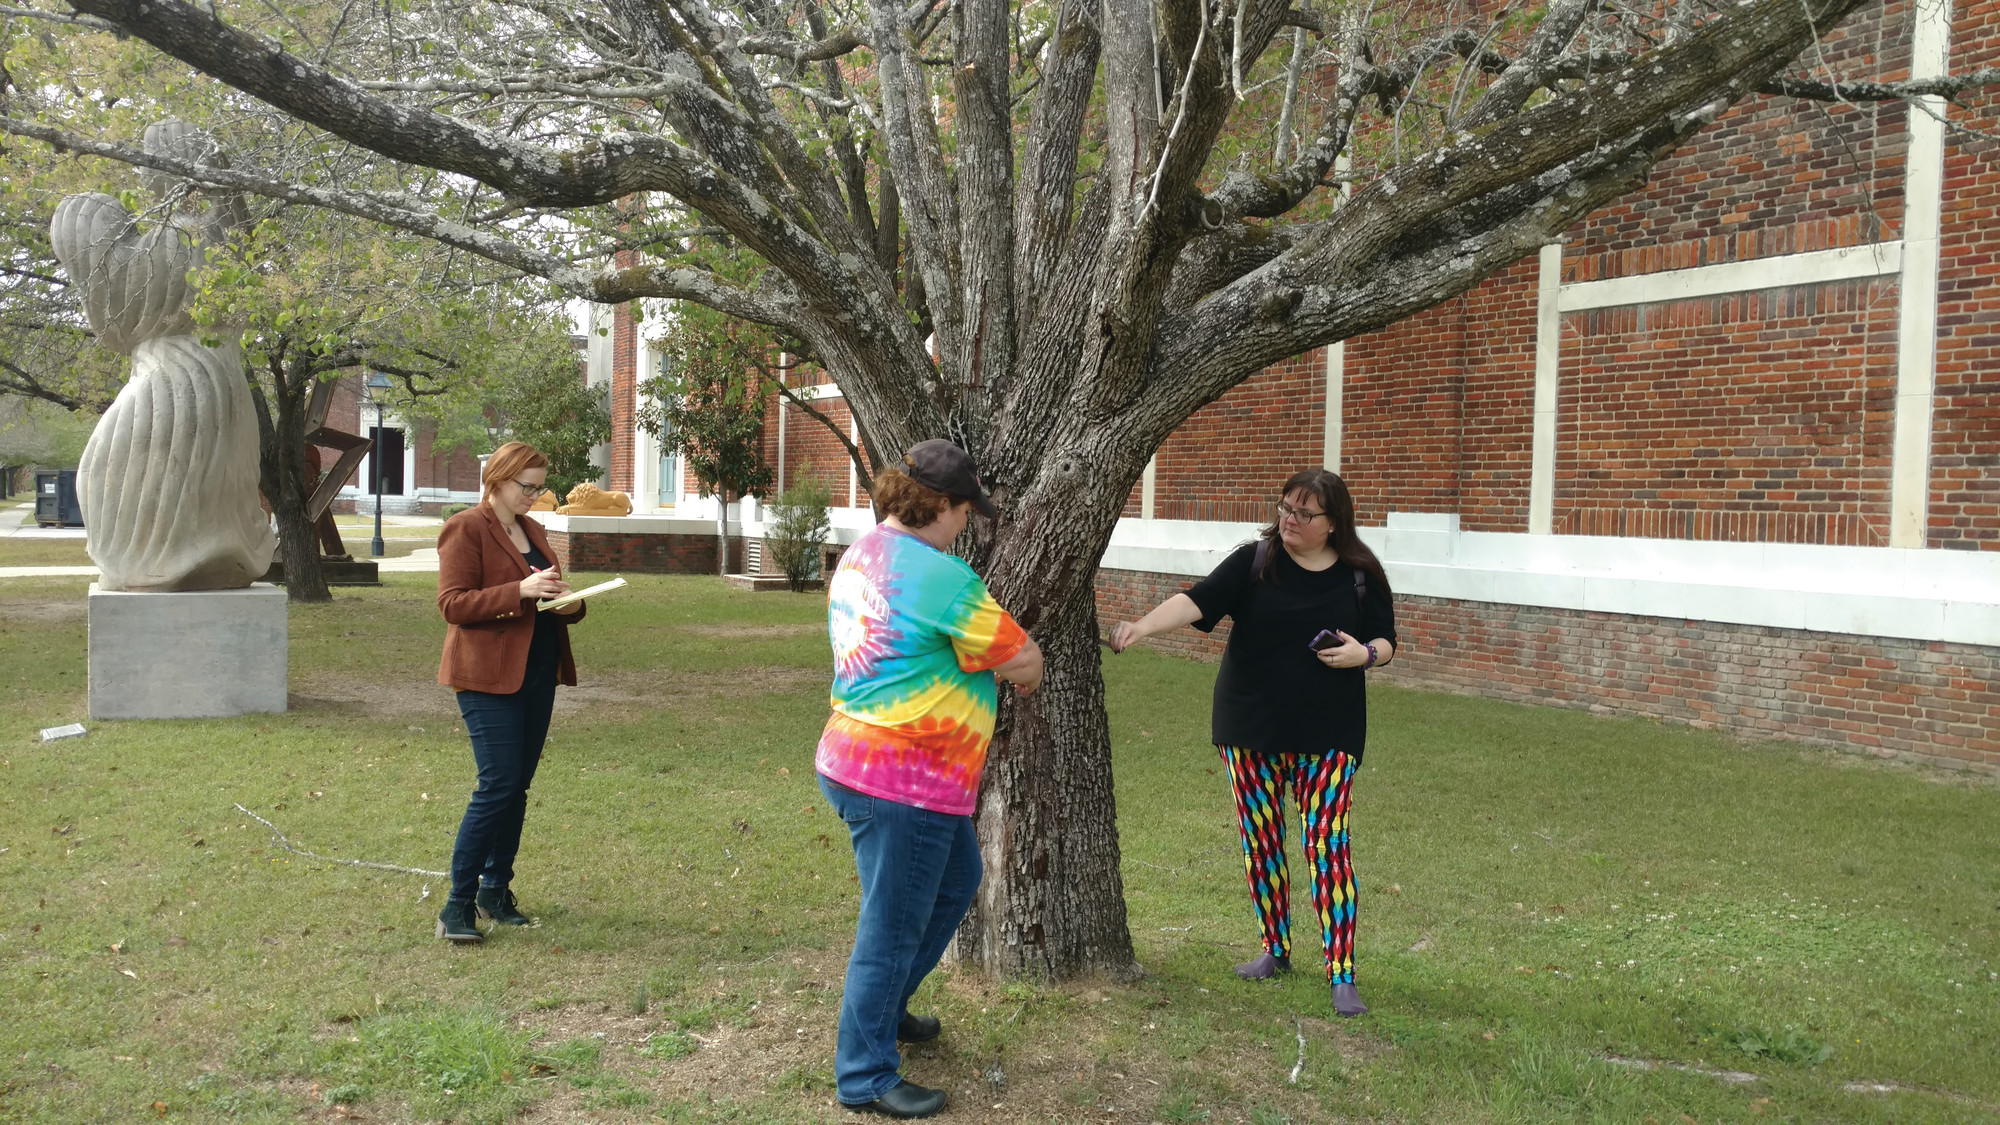 PHOTOS PROVIDEDBohumila Augustinova, Pamela Leonard and Jamie Weese, yarn bombers from Columbia, measure a tree for the Sumter Yarn Explosion that begins this month.